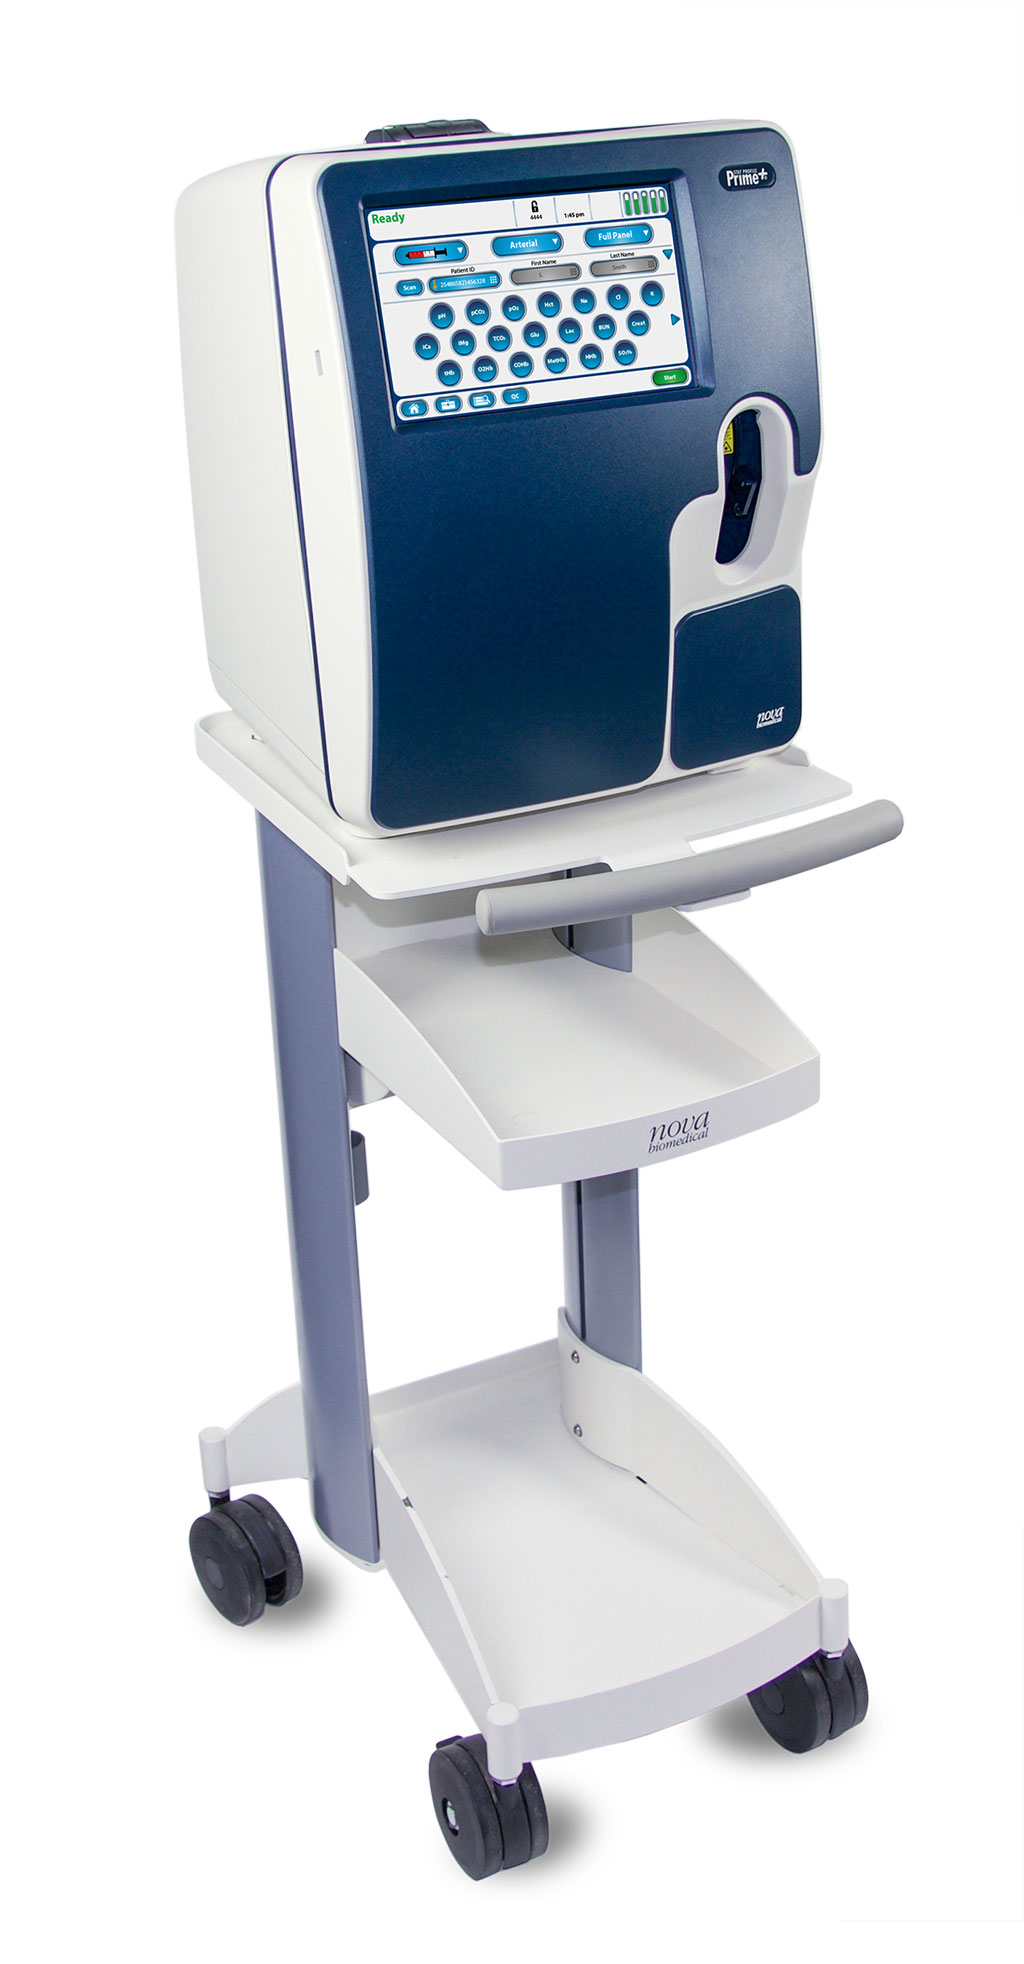 Image: Nova\'s Stat Profile Prime Plus critical care blood gas analyzer (Photo courtesy of Nova Biomedical)